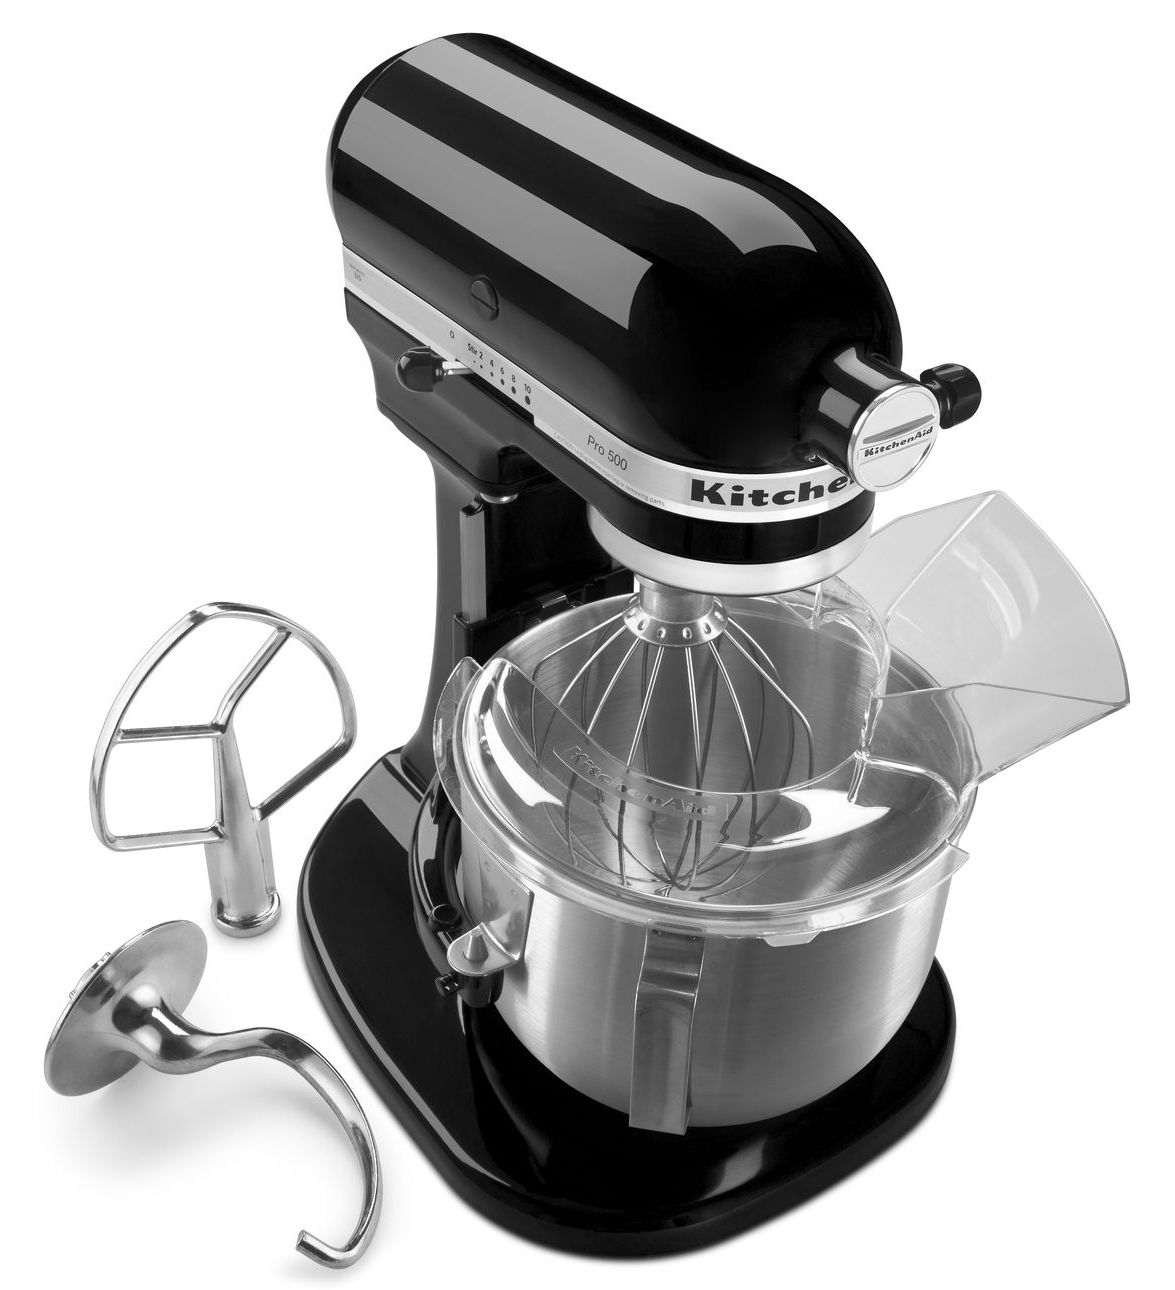 Refurbished KitchenAid Pro 500 Series 5 Quart Bowl-Lift Stand Mixer on toy mixing bowls, vintage mixing bowls, sunbeam mixing bowls, jenn-air mixing bowls, pyrex mixing bowls, anchor hocking mixing bowls, oxo mixing bowls, ge mixing bowls, zak designs mixing bowls, stoneware mixing bowls, cuisinart mixing bowls, kirkland mixing bowls, rubbermaid mixing bowls, squish mixing bowls, extra large mixing bowls, rachael ray mixing bowls, breville mixing bowls, better homes and gardens mixing bowls, tefal mixing bowls, winco mixing bowls,